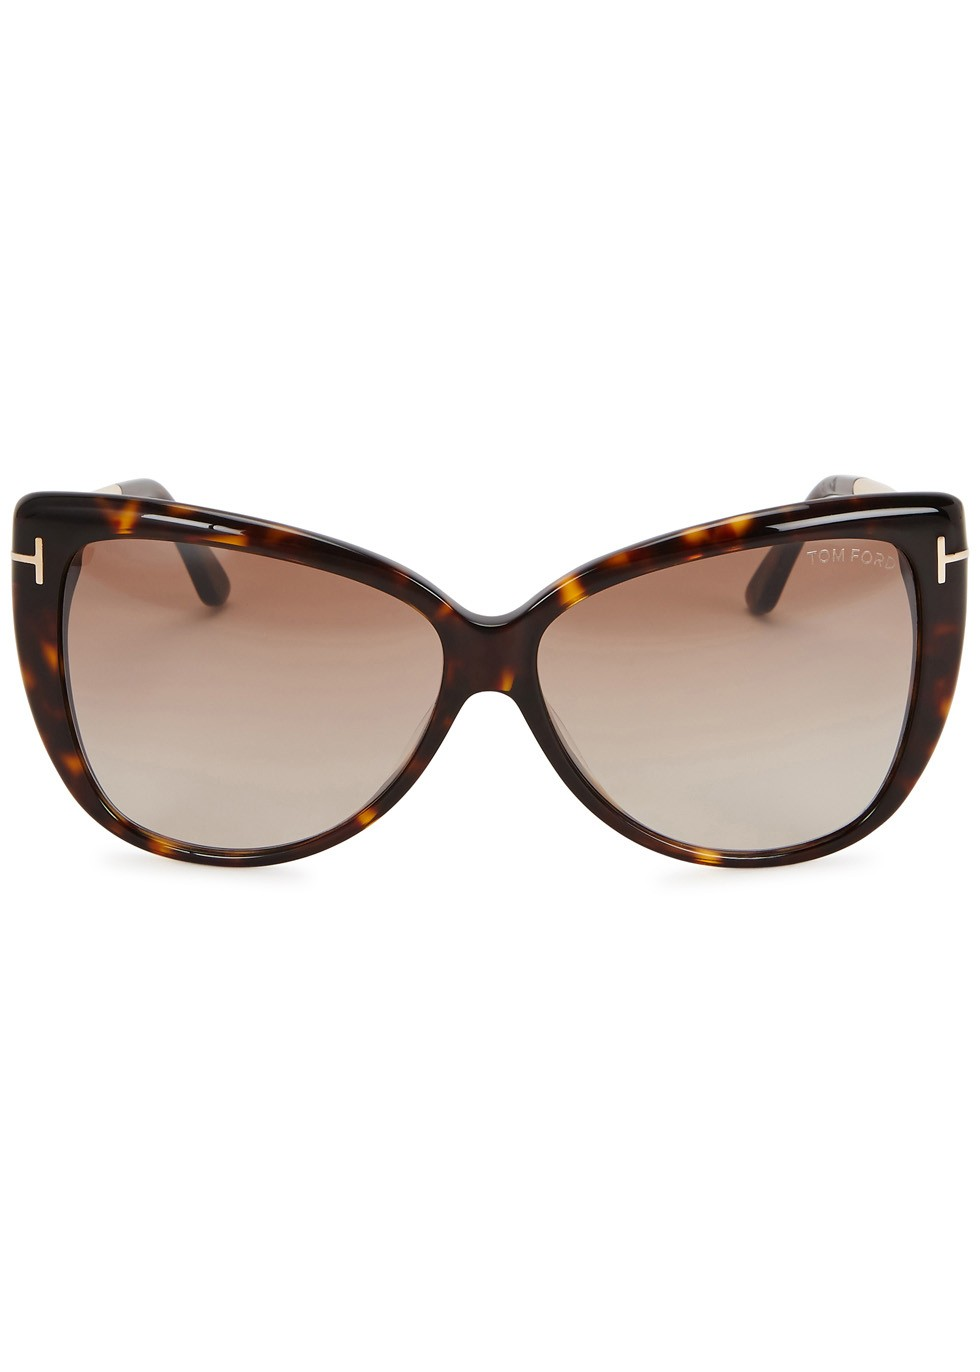 Tom Ford Reveka tortoiseshell sunglasses, £285